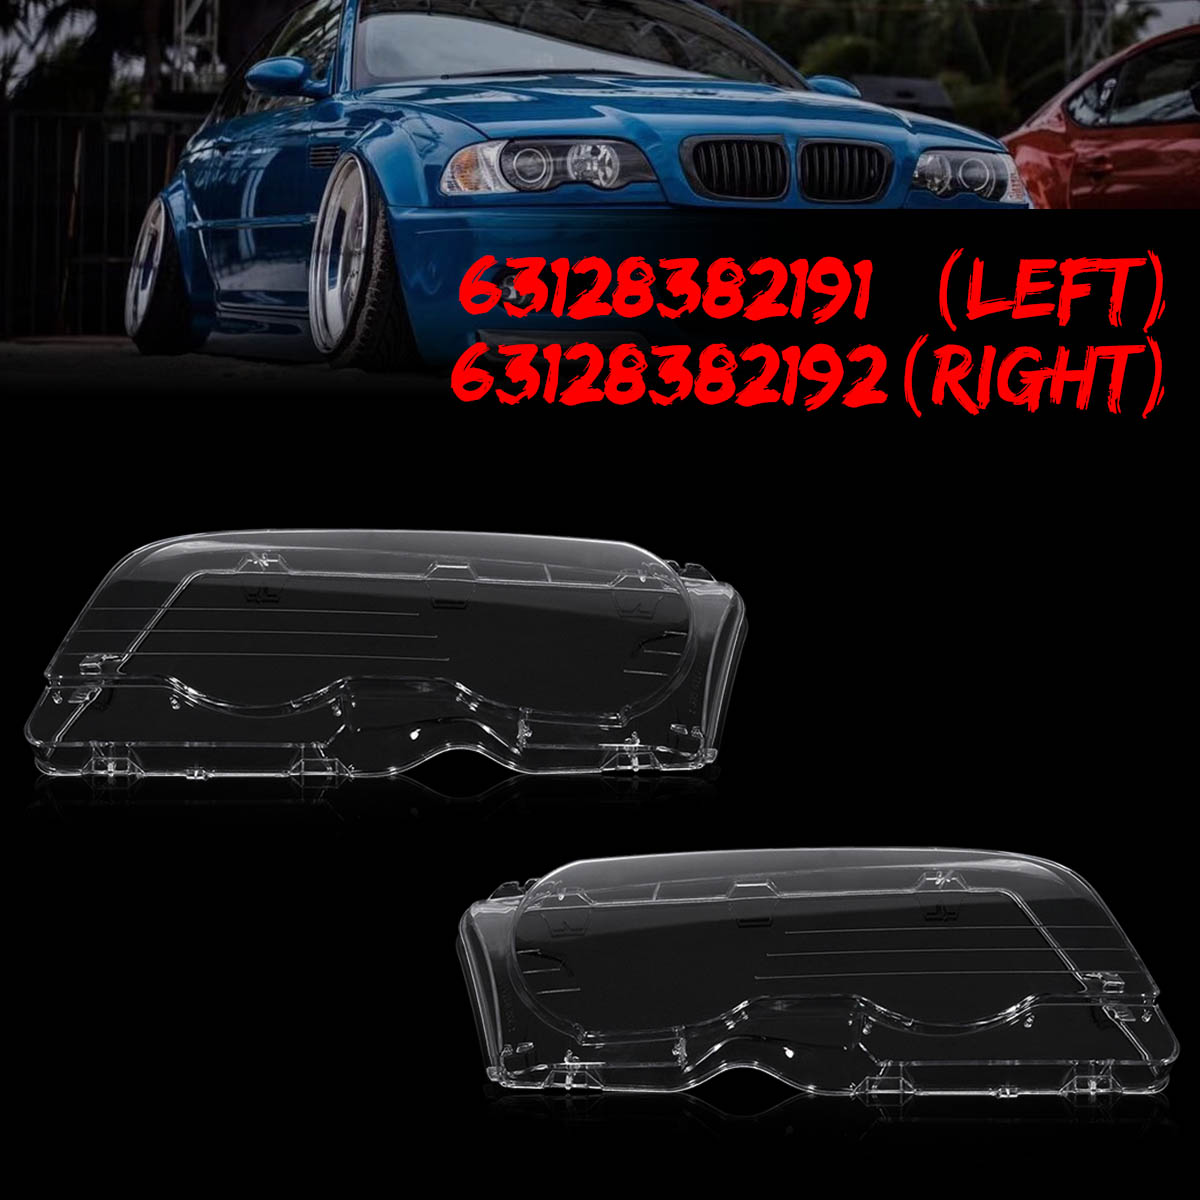 1 Pair Left & Right Headlight Headlamp Clear Lenses Lens Clear Cover Coupe Convertible For BMW E46 2DR 1999-2003 M3 2001-2006 headlight clear lens cover 2 pcs front headlamp plastic shell for bmw e46 2 door 1999 2002 left